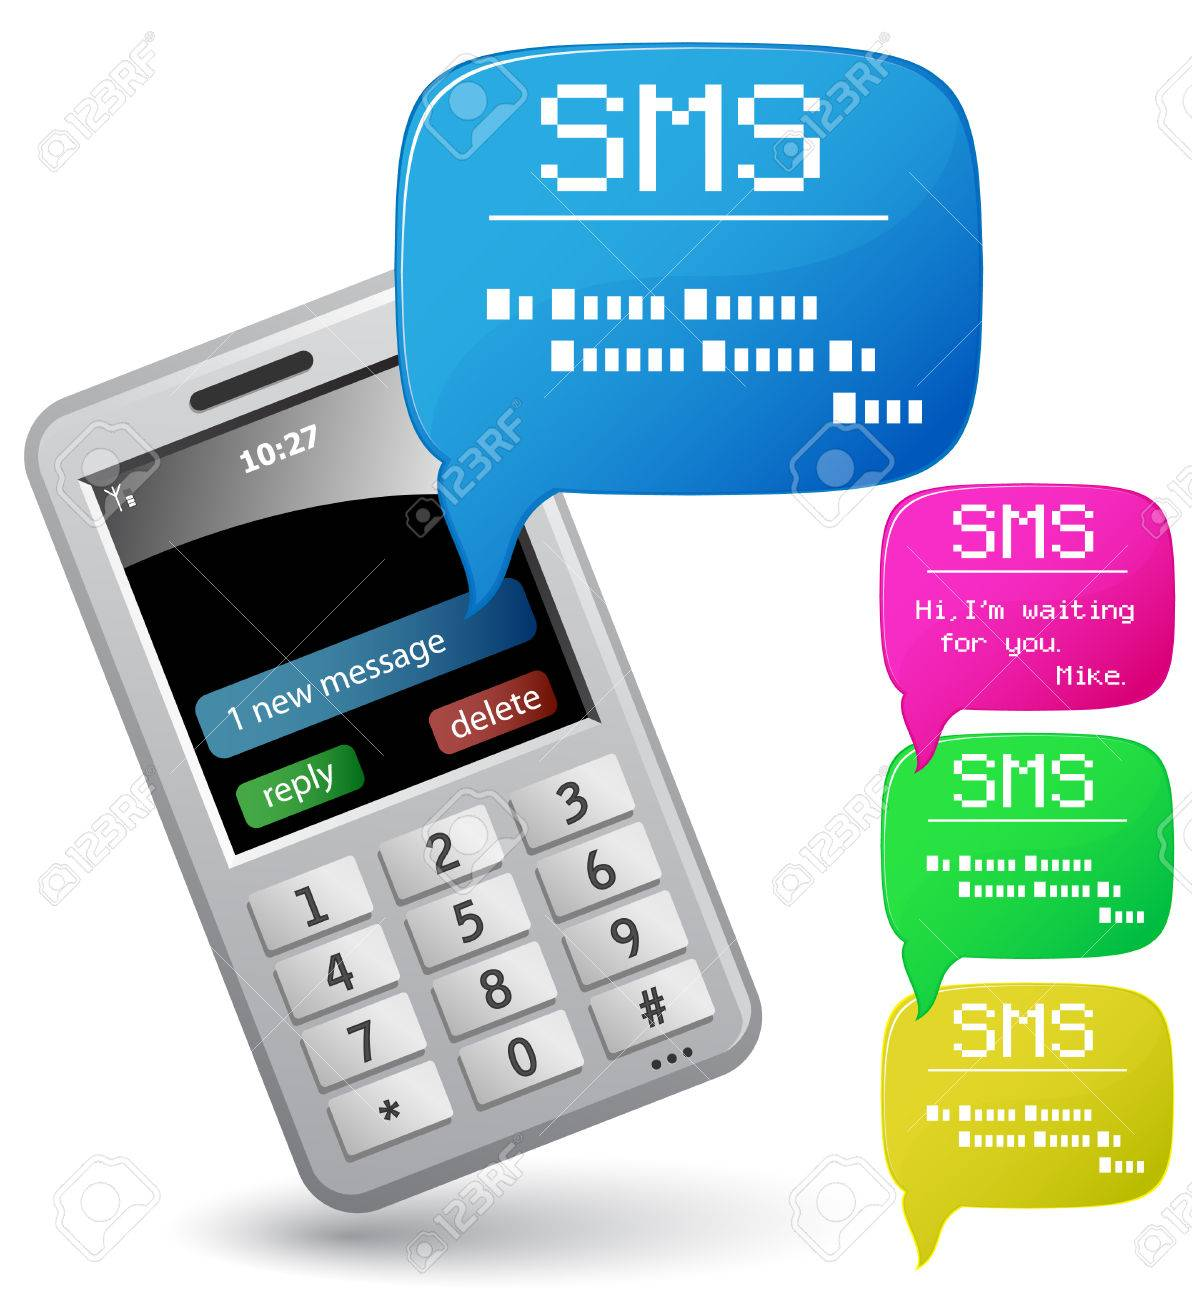 Subscribe to Producer SMS Messages – Simpson Seeds